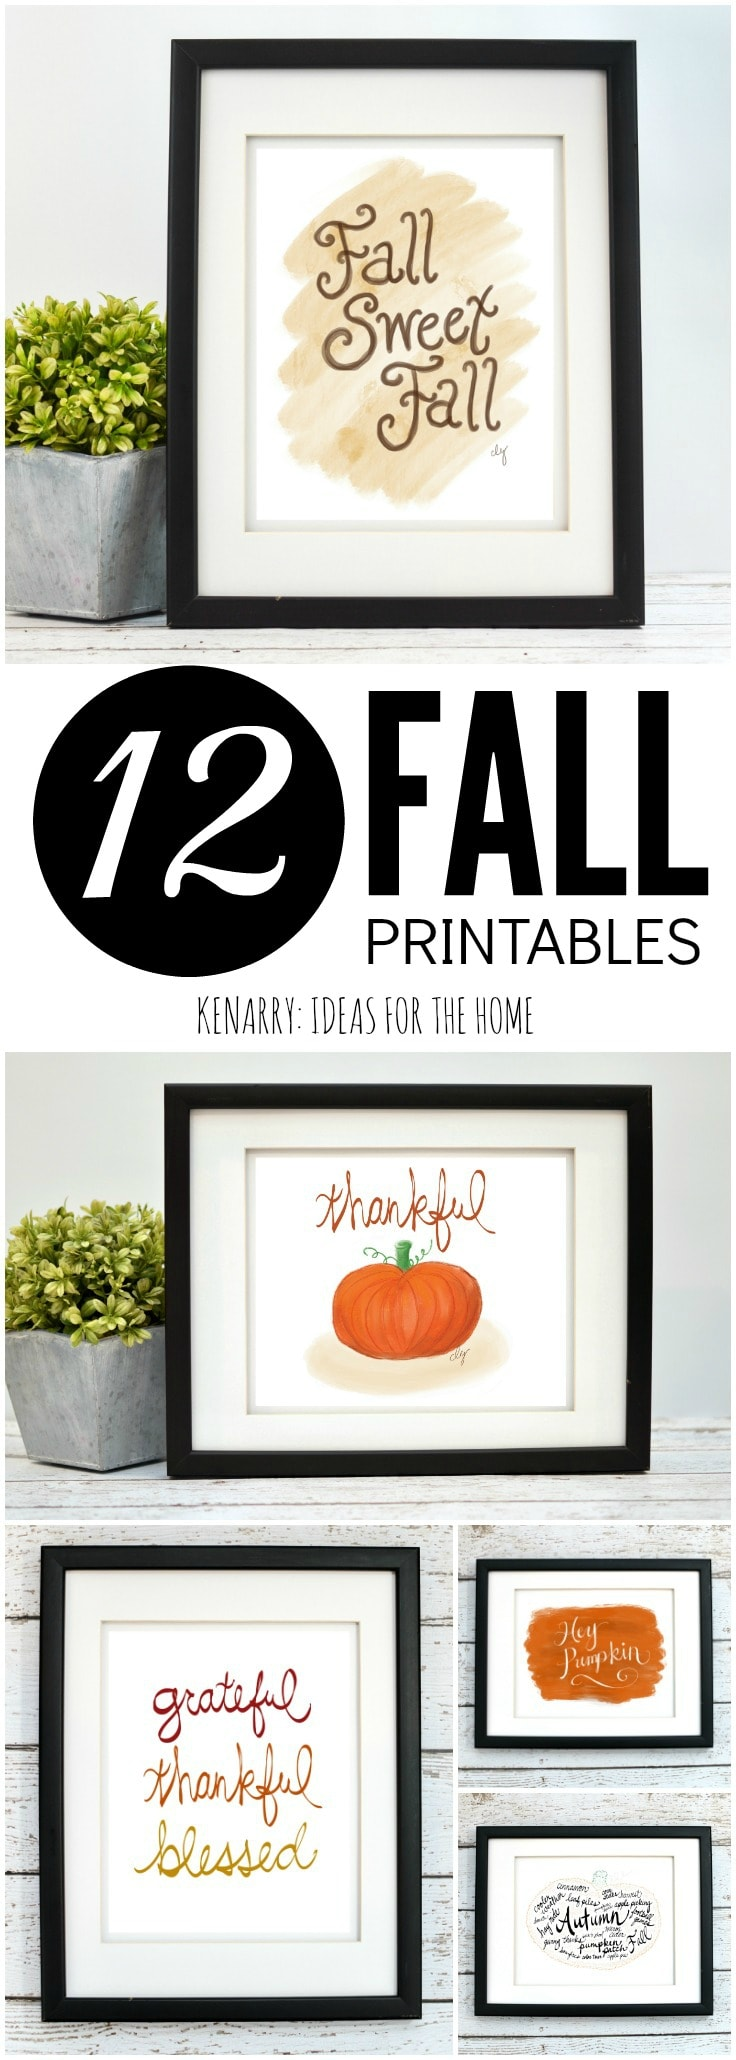 The fall art collection from Kenarry: Ideas for the Home is available as digital printable art on Etsy. Printables are a great way to decorate the walls of your home on a budget for autumn, Halloween and Thanksgiving.